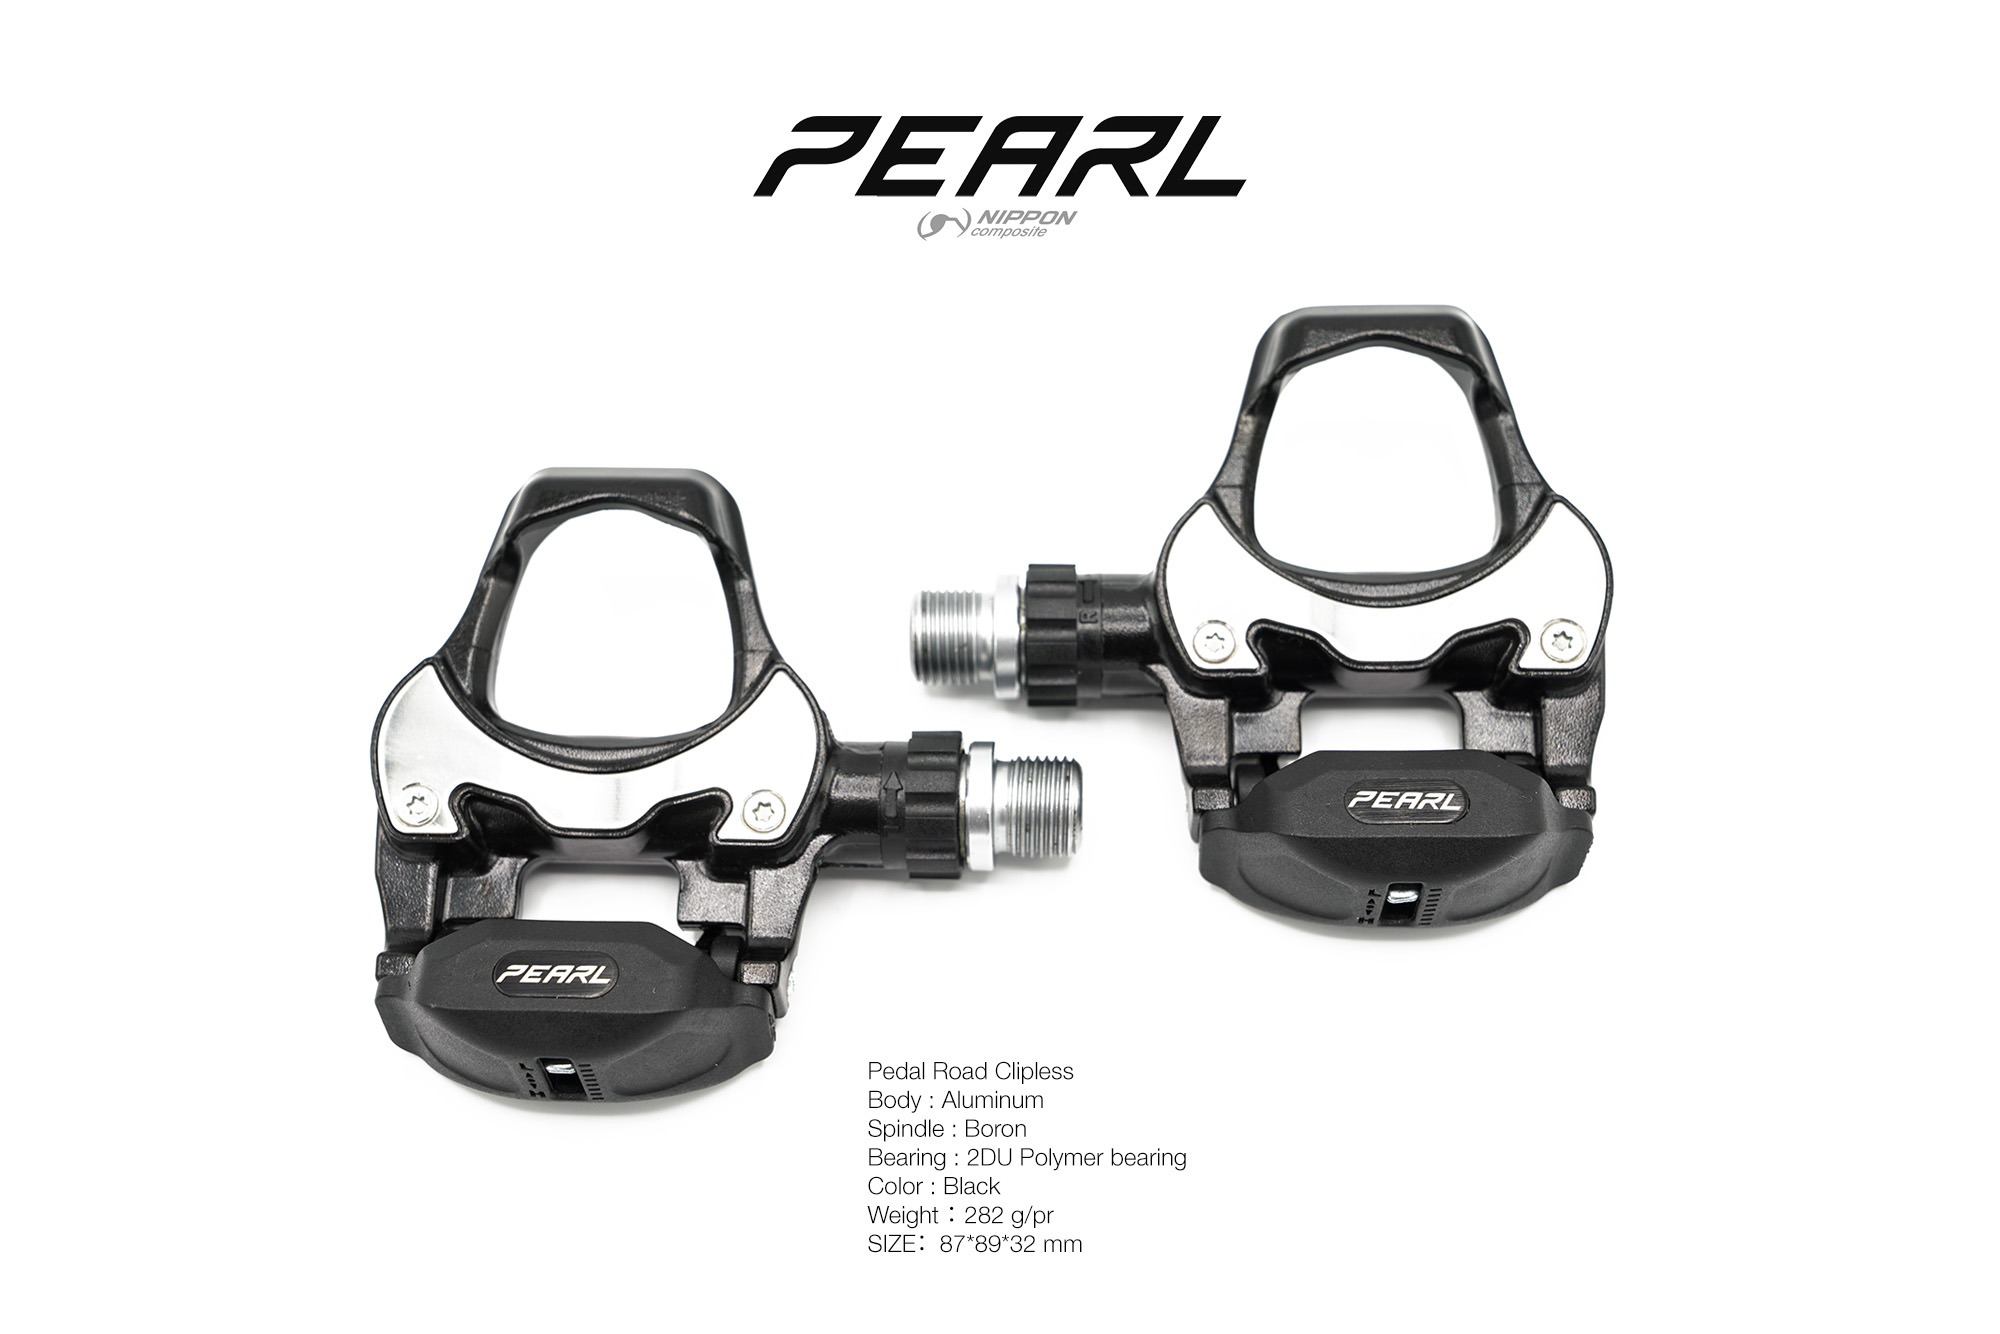 PEARL | Road Clipless Pedal R251